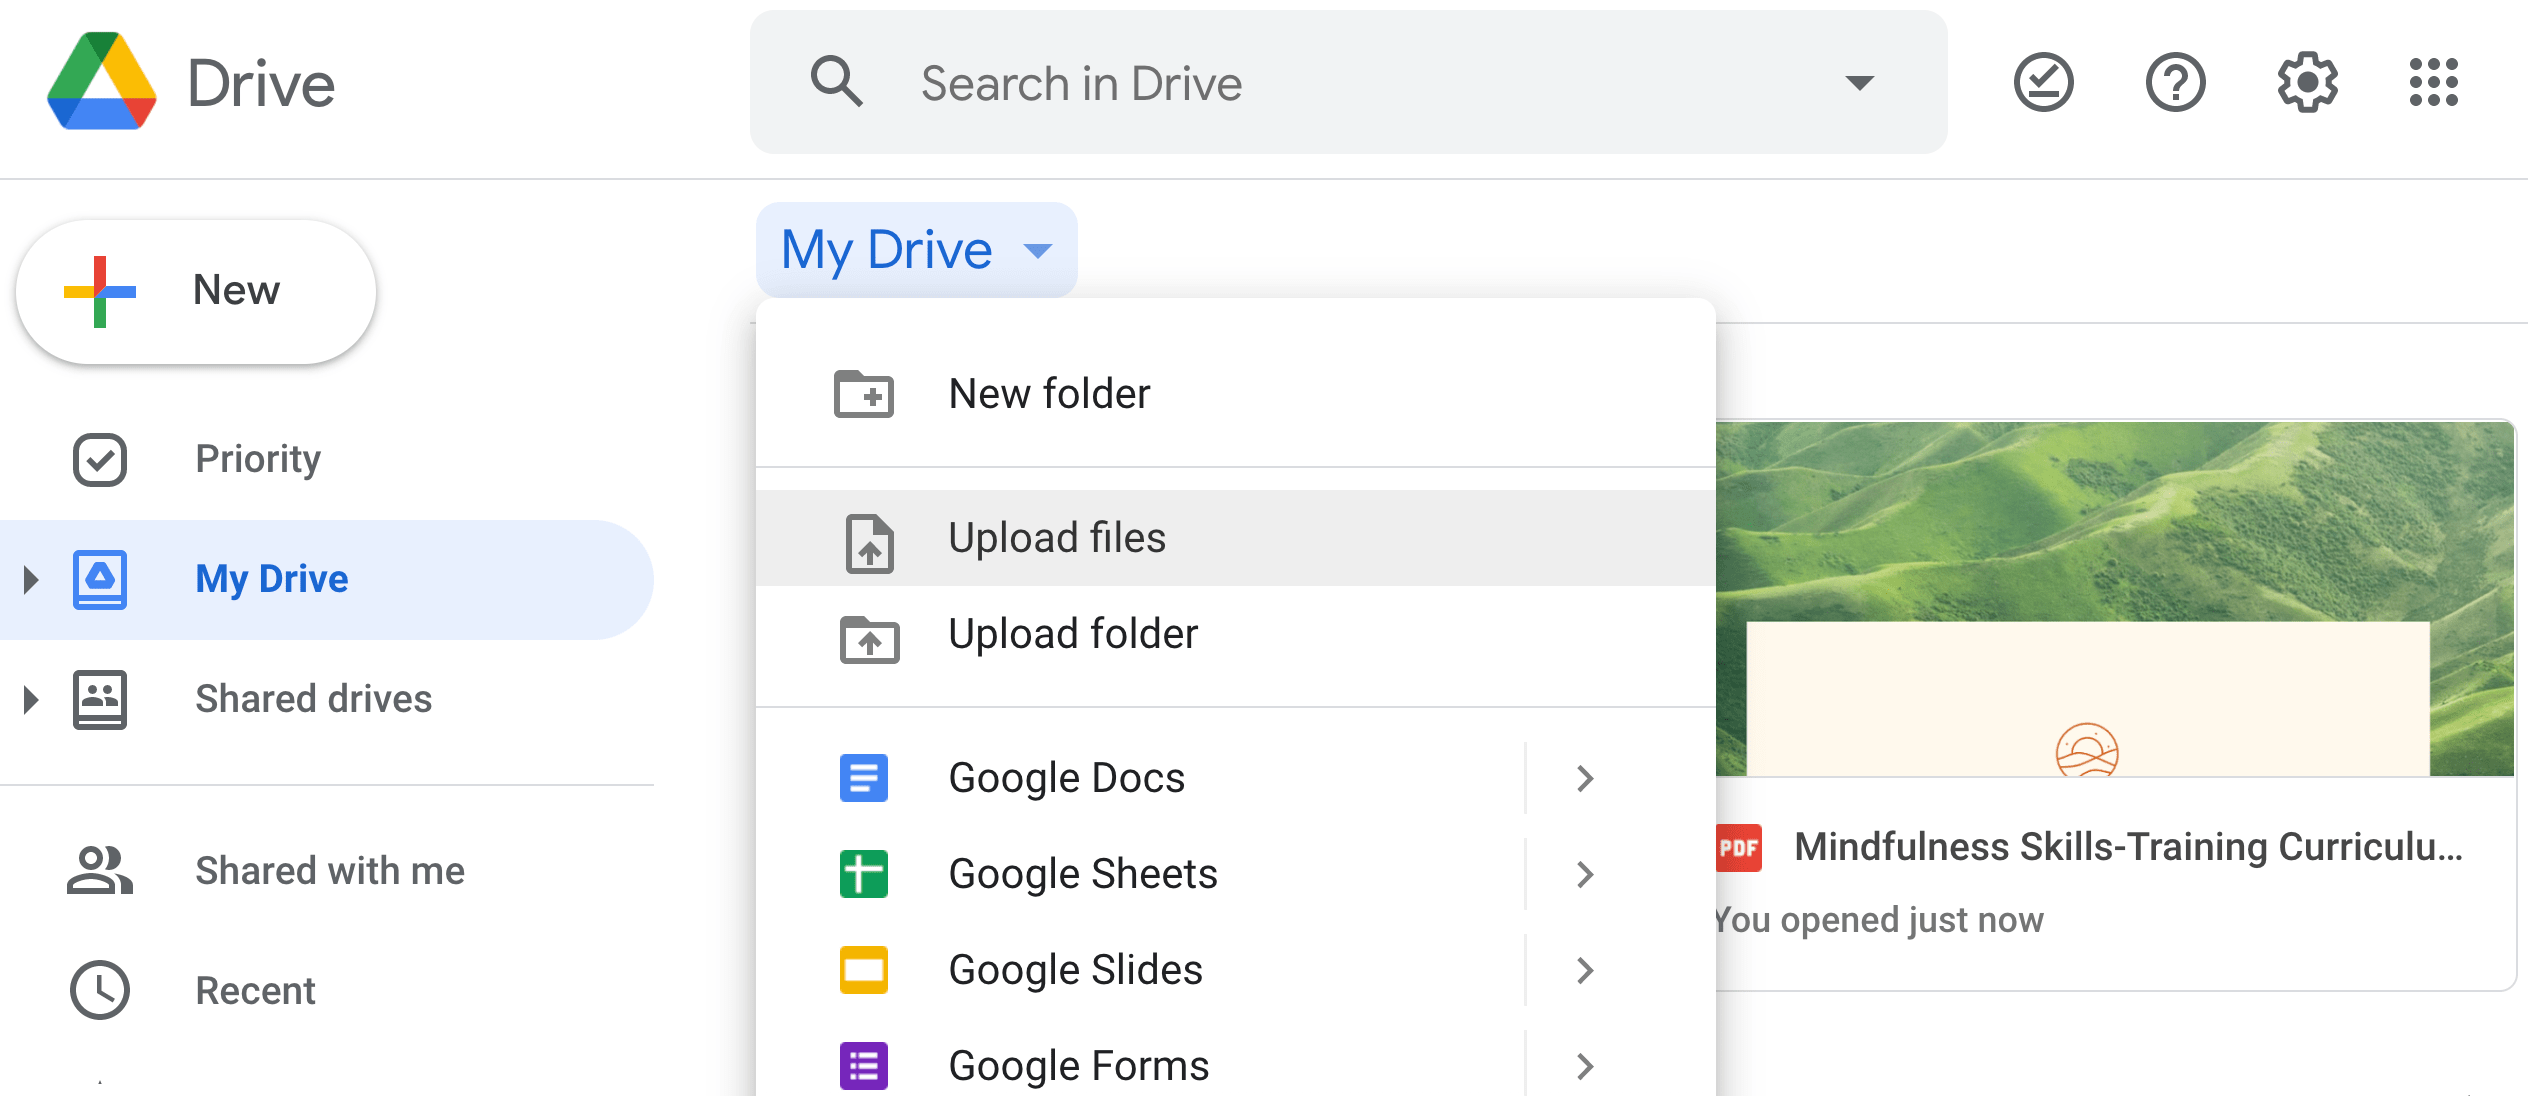 Google Drive homepage to share large files